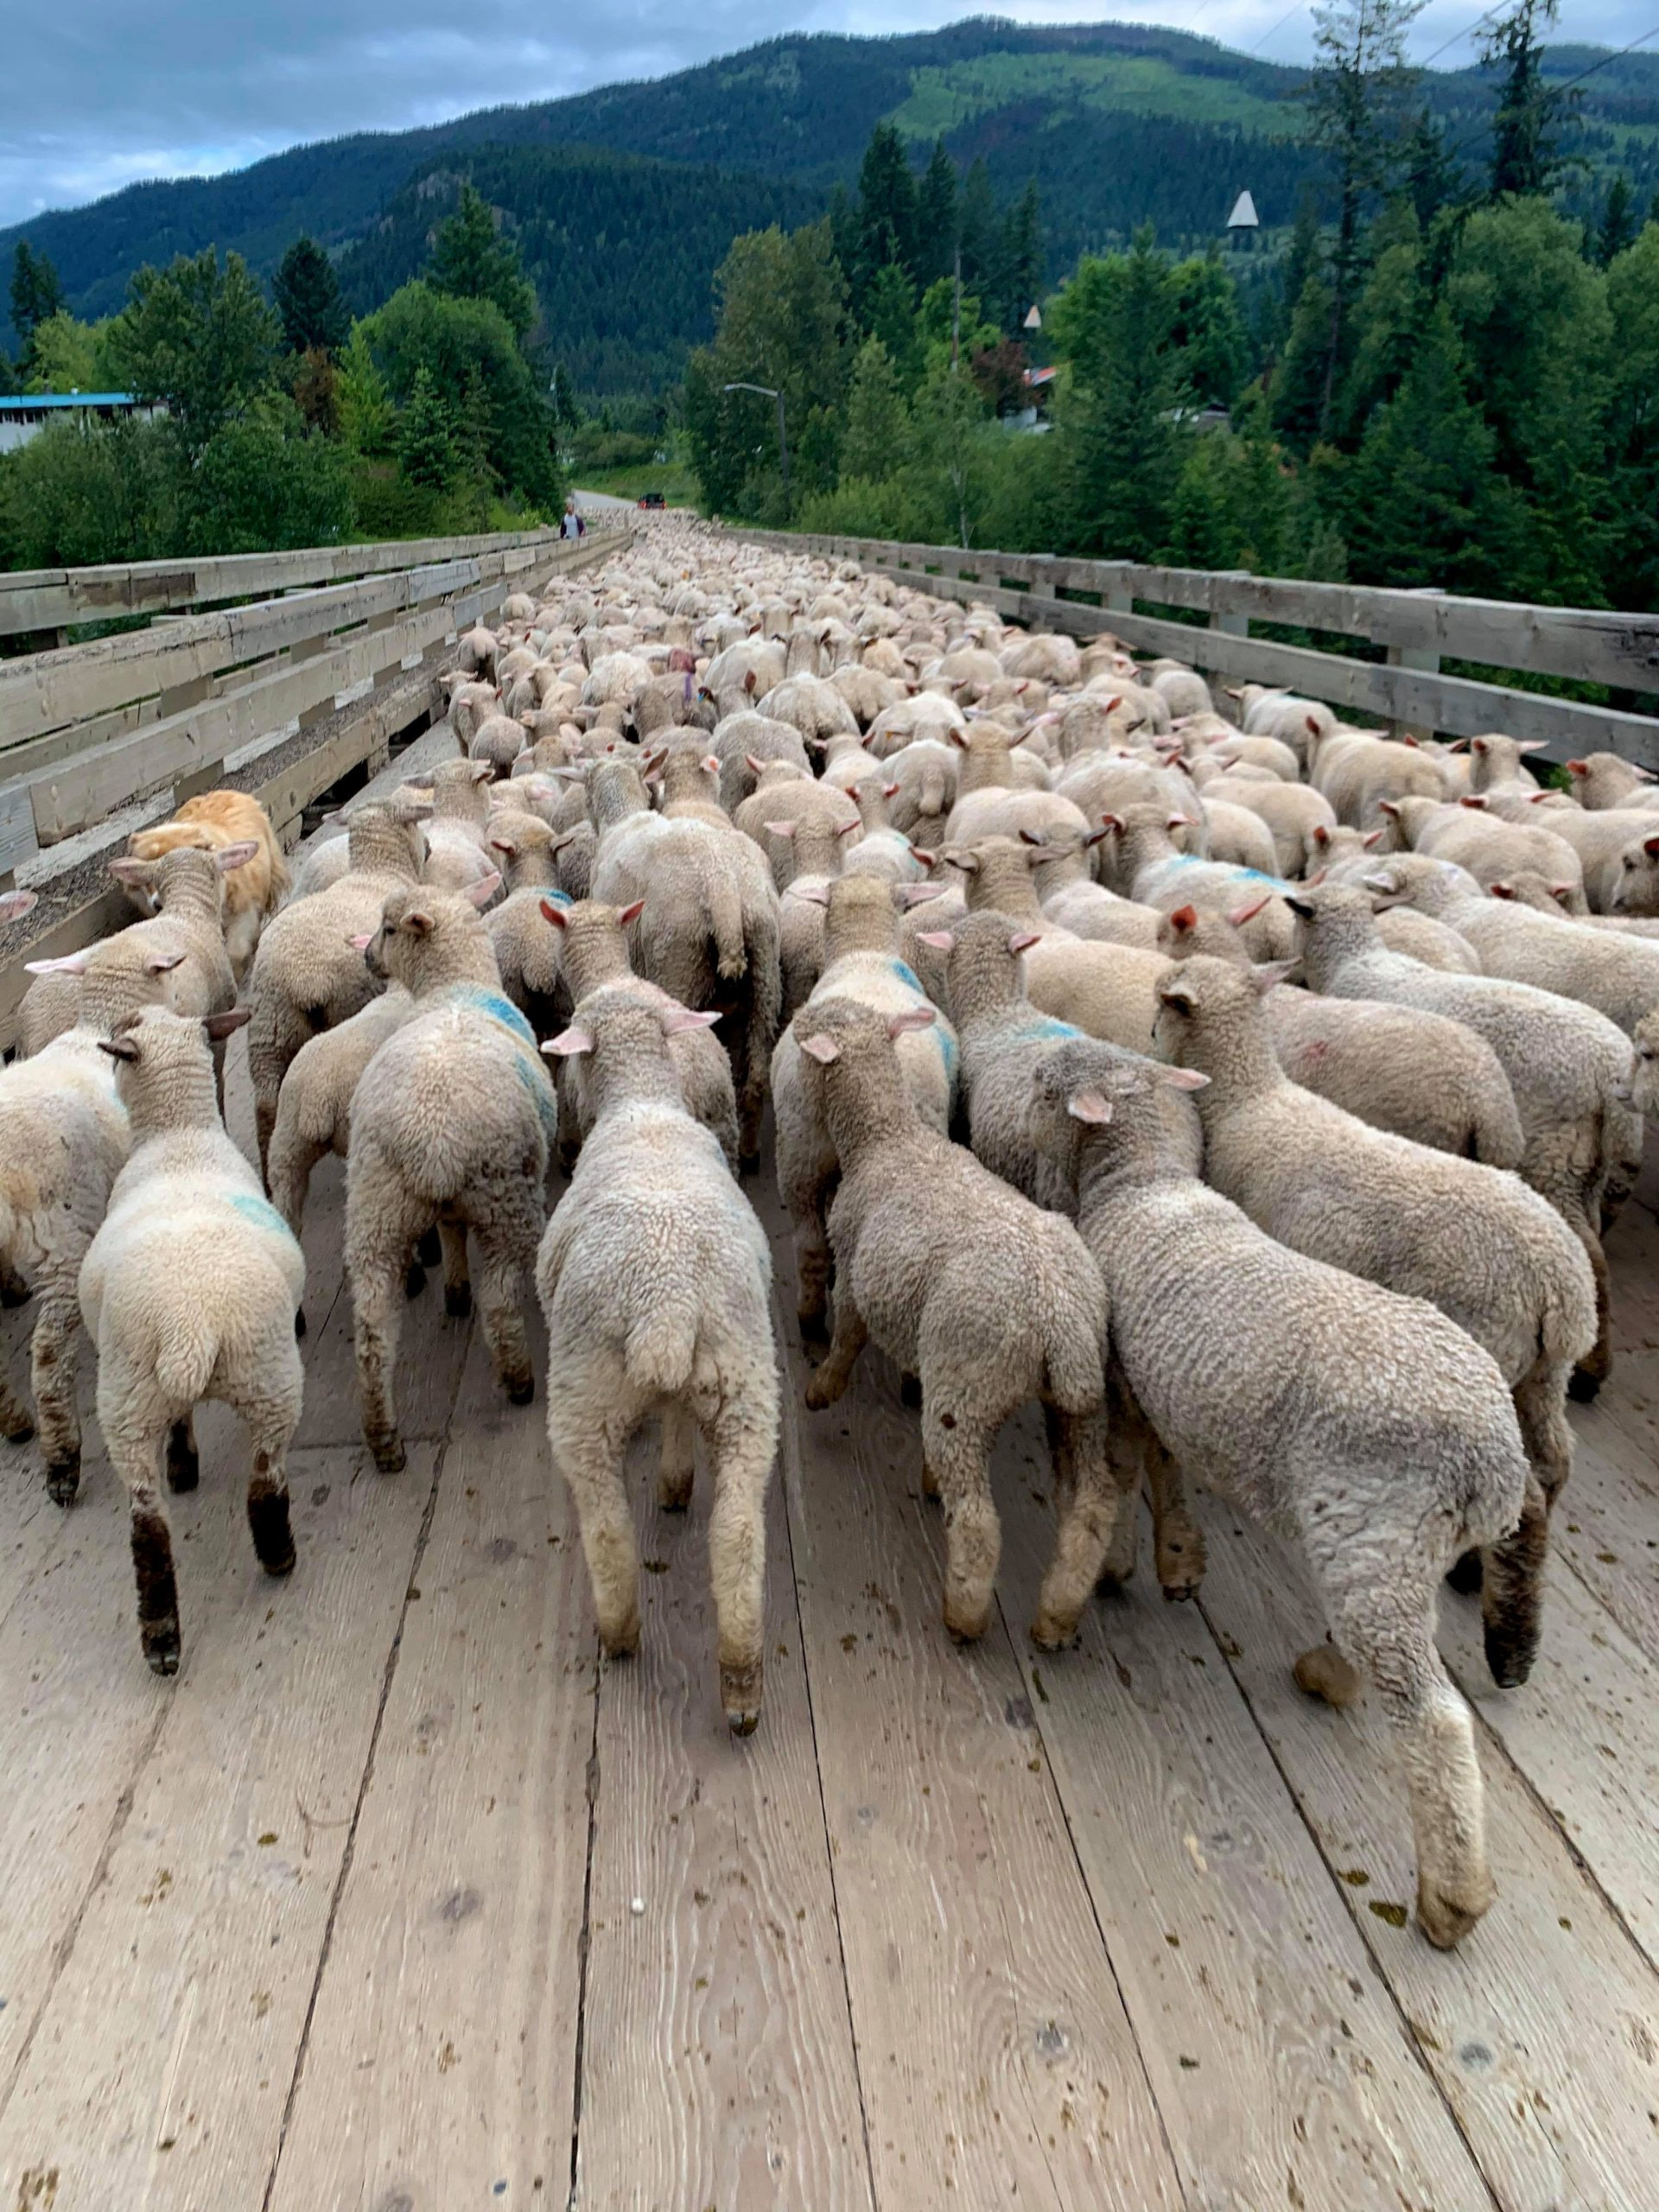 Wise Leaders Raise up Lead Sheep